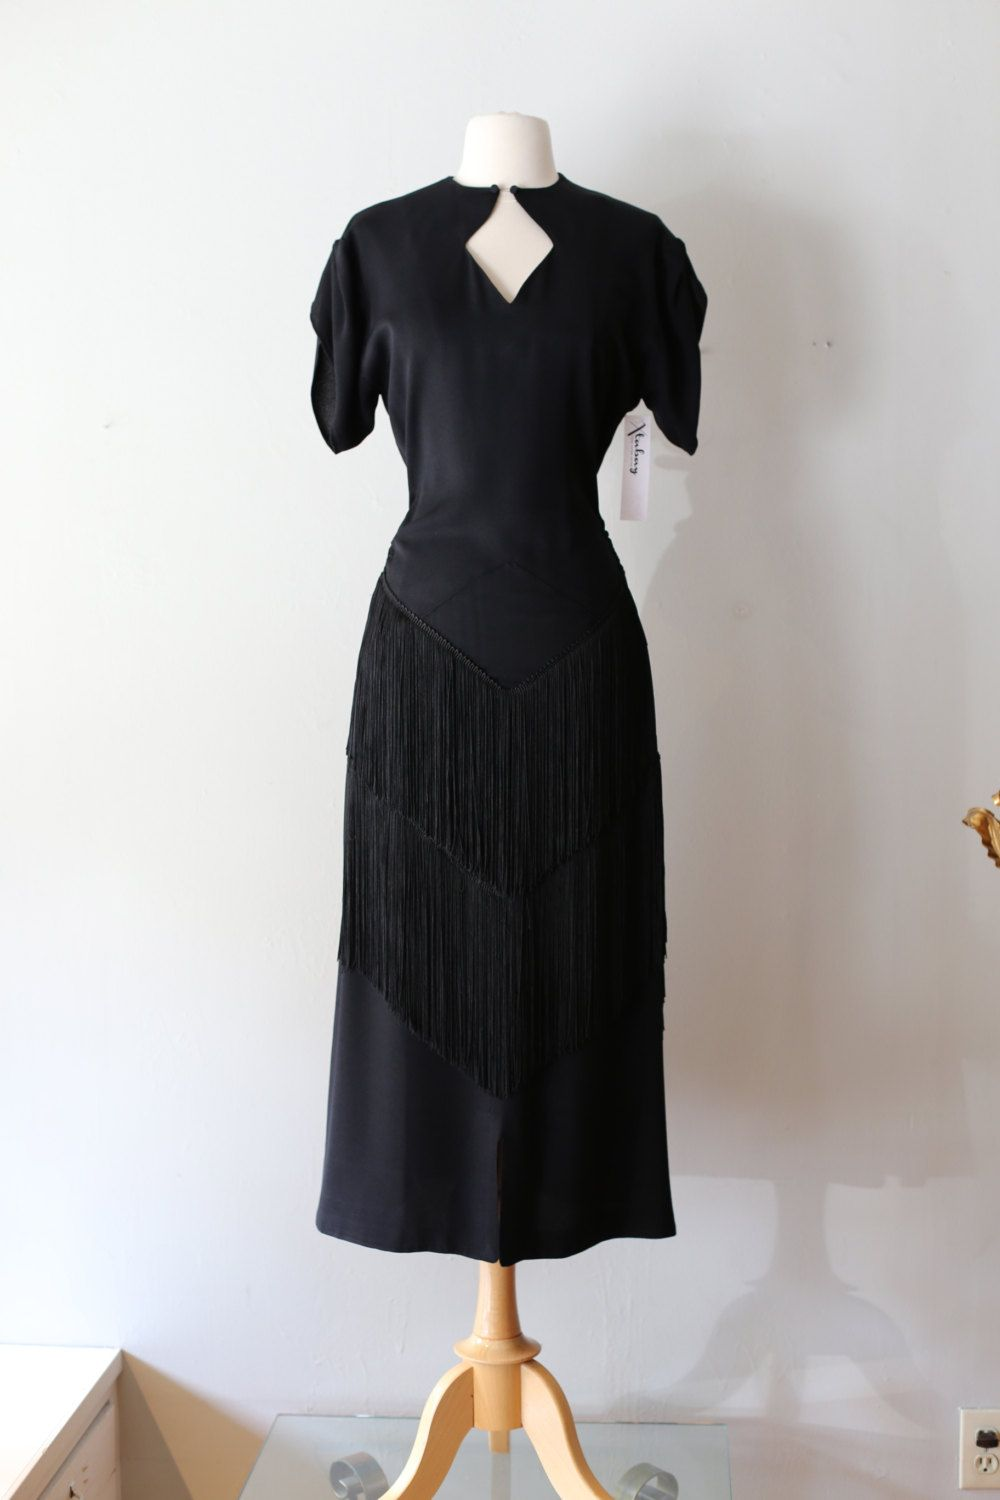 25d087789a Vintage 1940s Rayon Cocktail Dress With Fringe ~ Vintage 40s Femme Fatale  Dress Waist 32 Size Large by xtabayvintage on Etsy